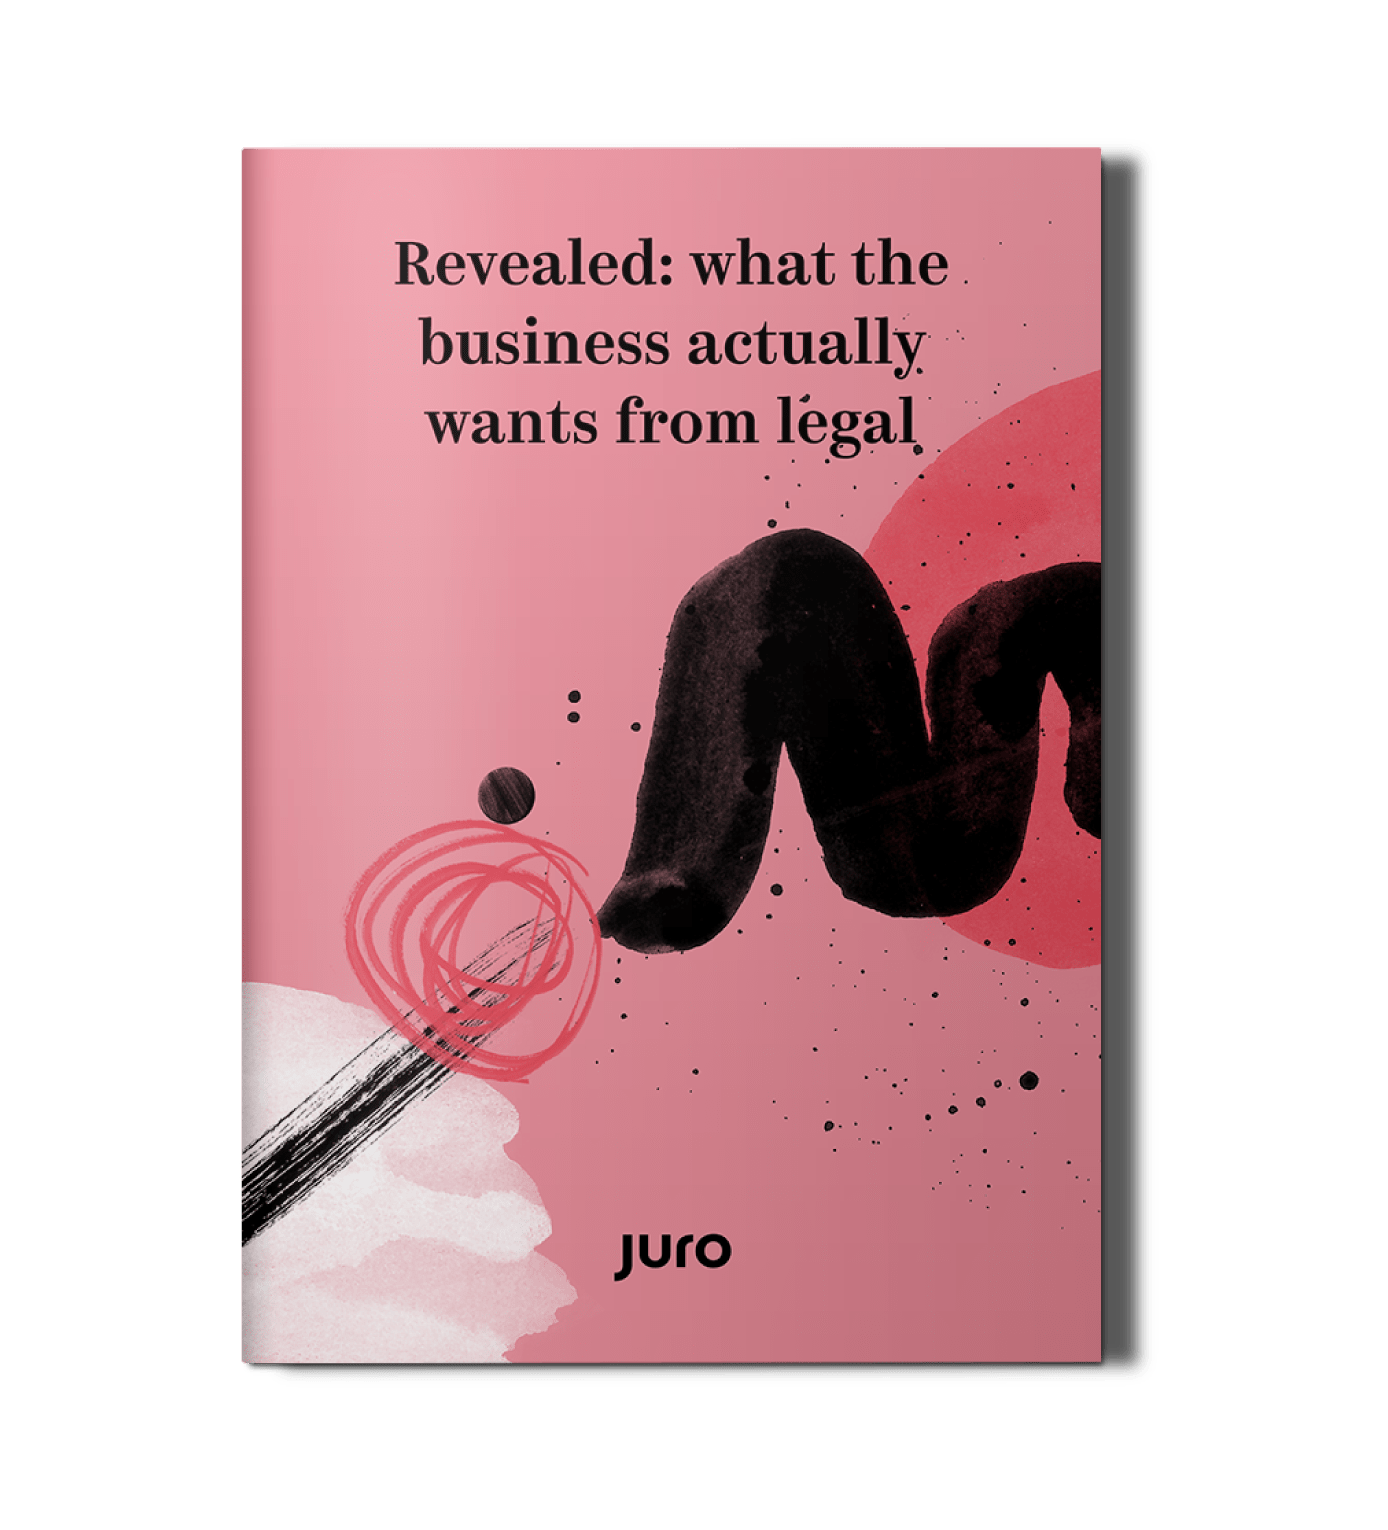 juro-legal-business-ebook-cover-1388x1530